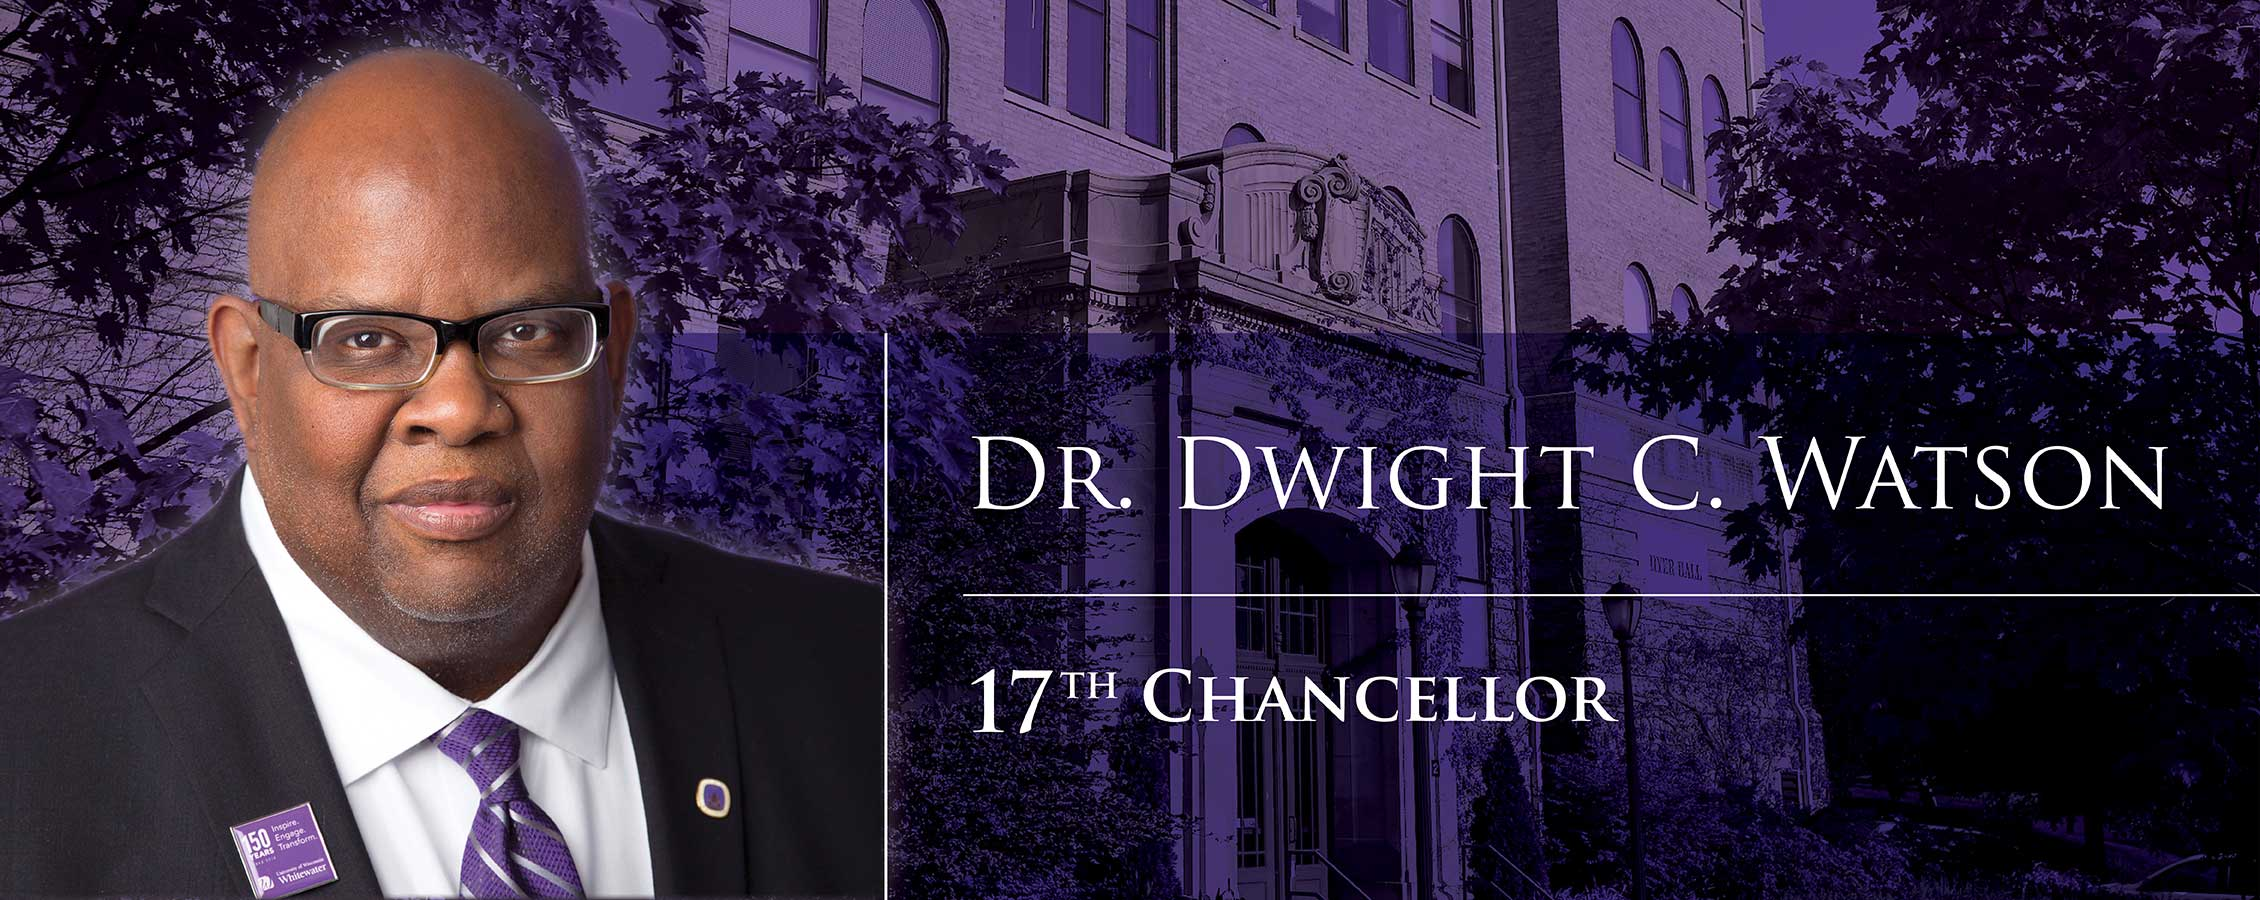 Dr. Dwight C. Watson | 17th Chancellor